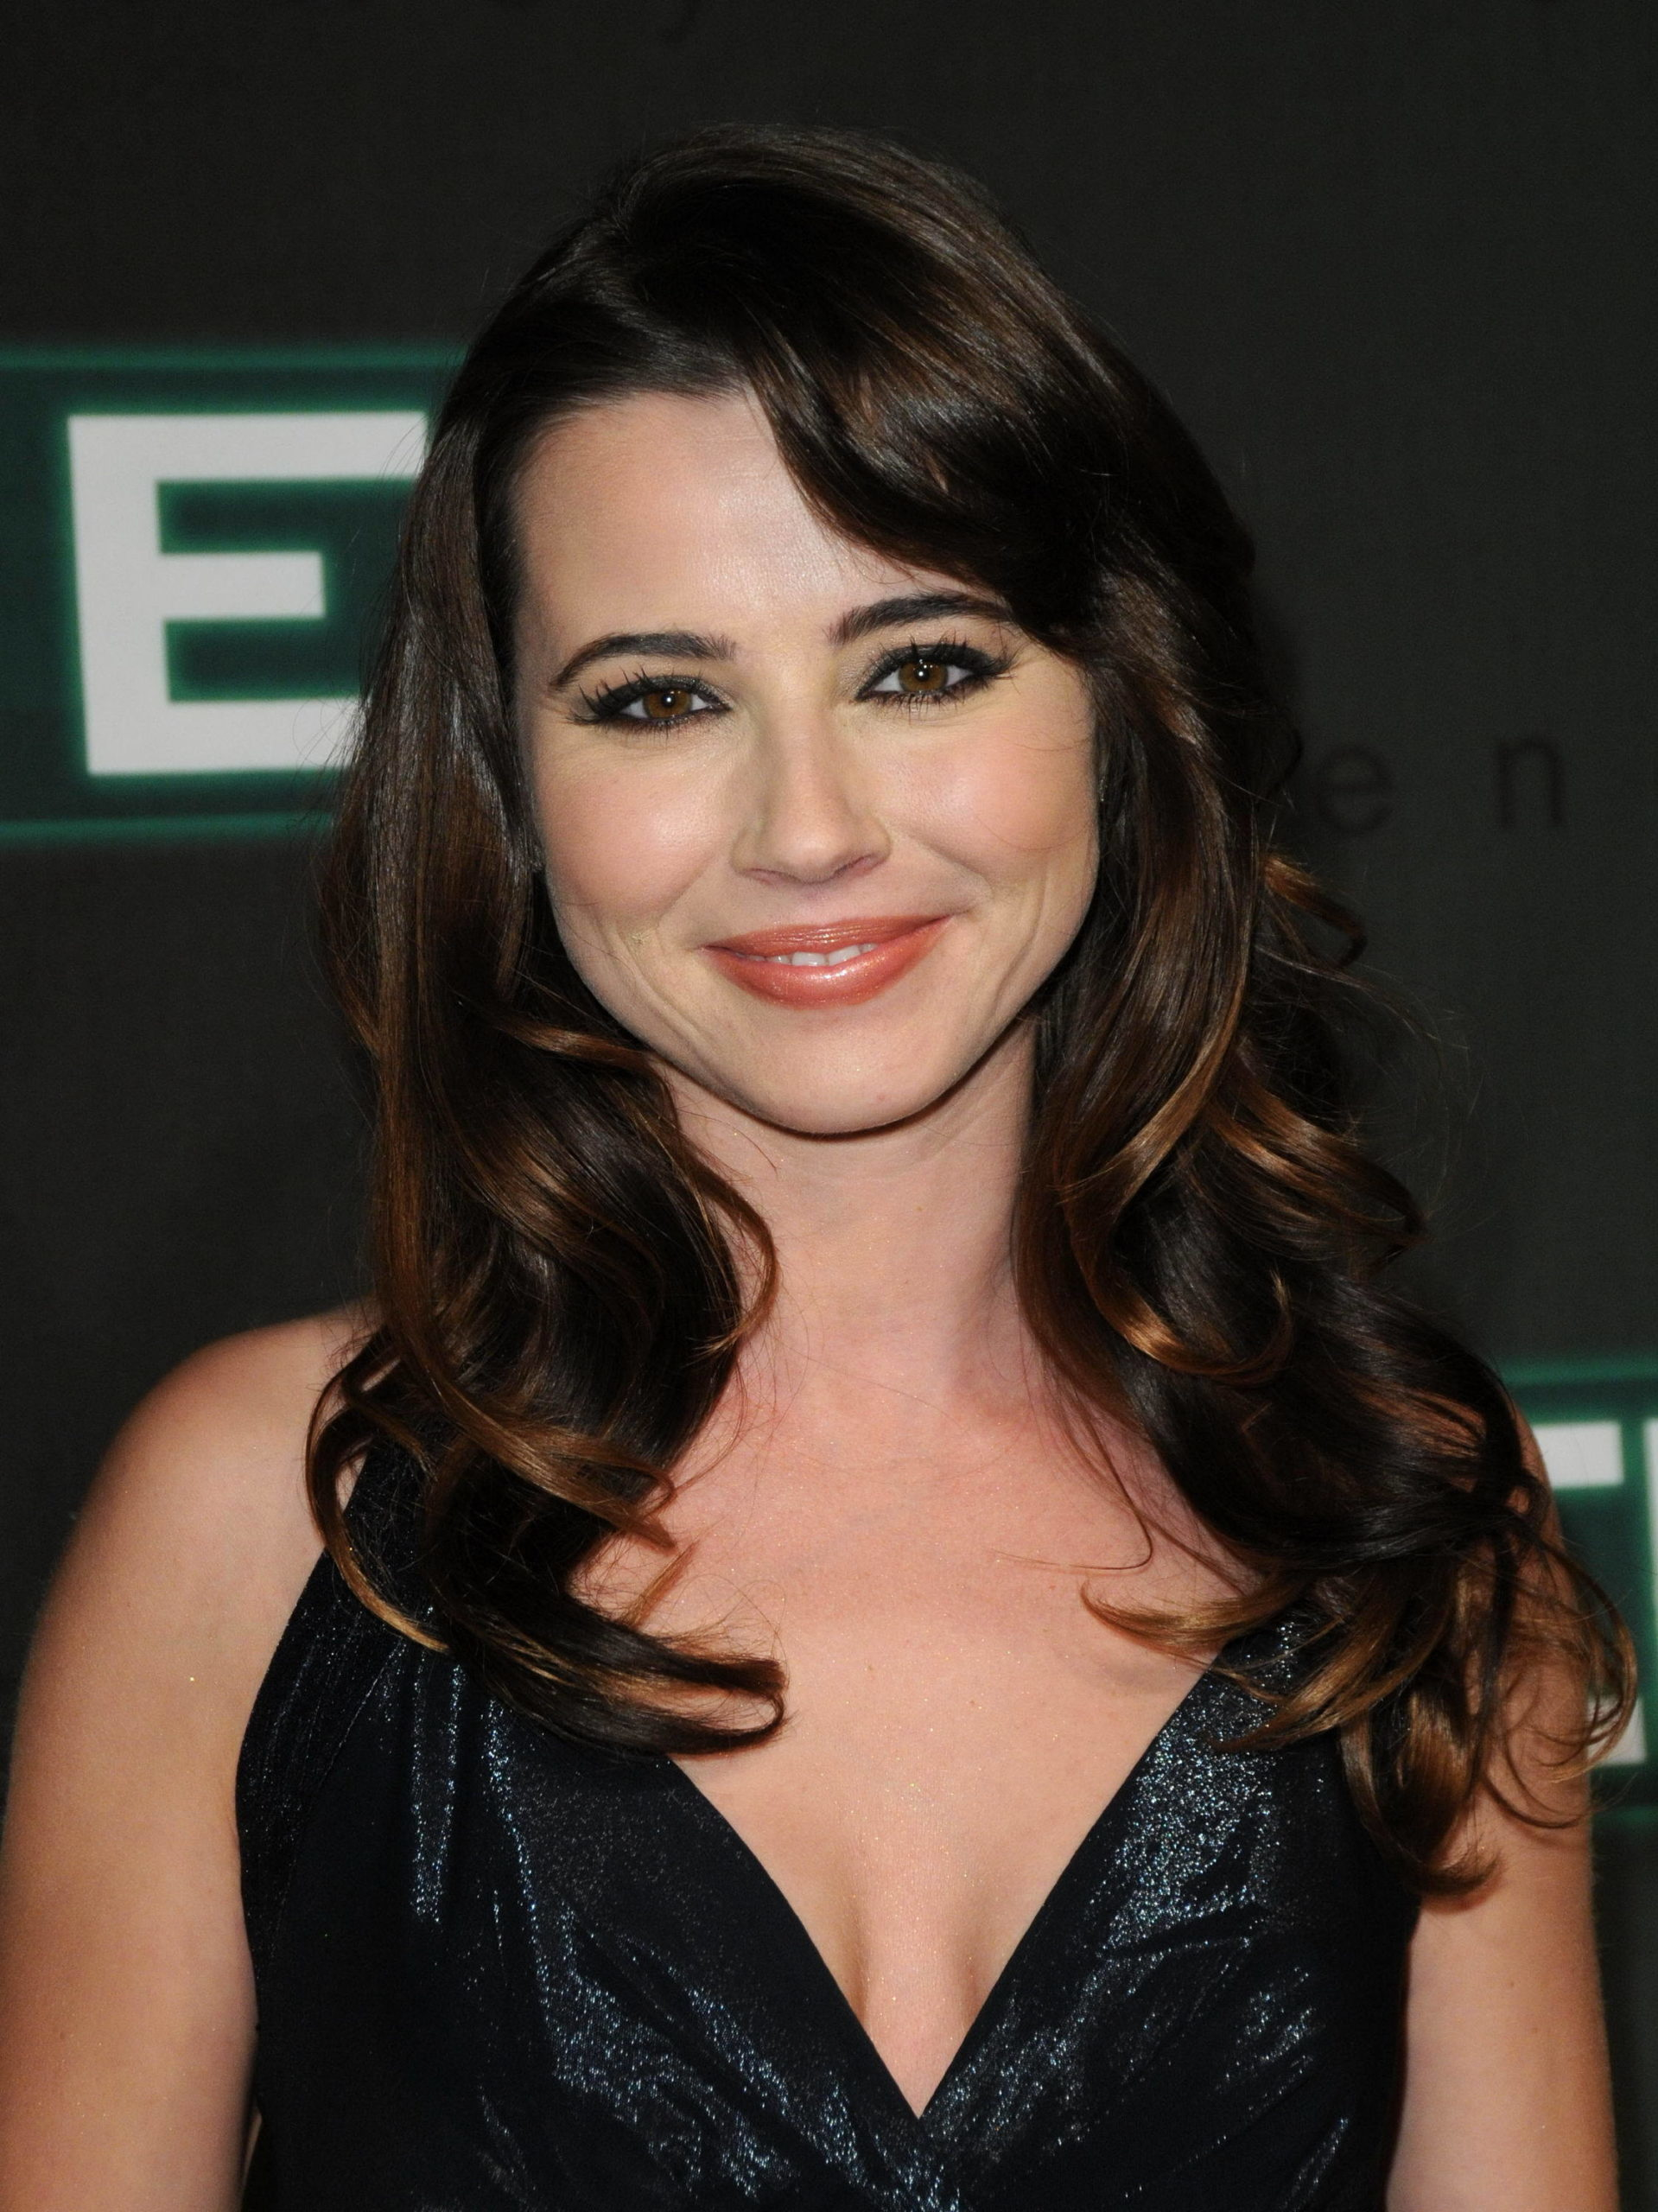 linda-cardellini-height-weight-age-bra-size-affairs-body-stats-3